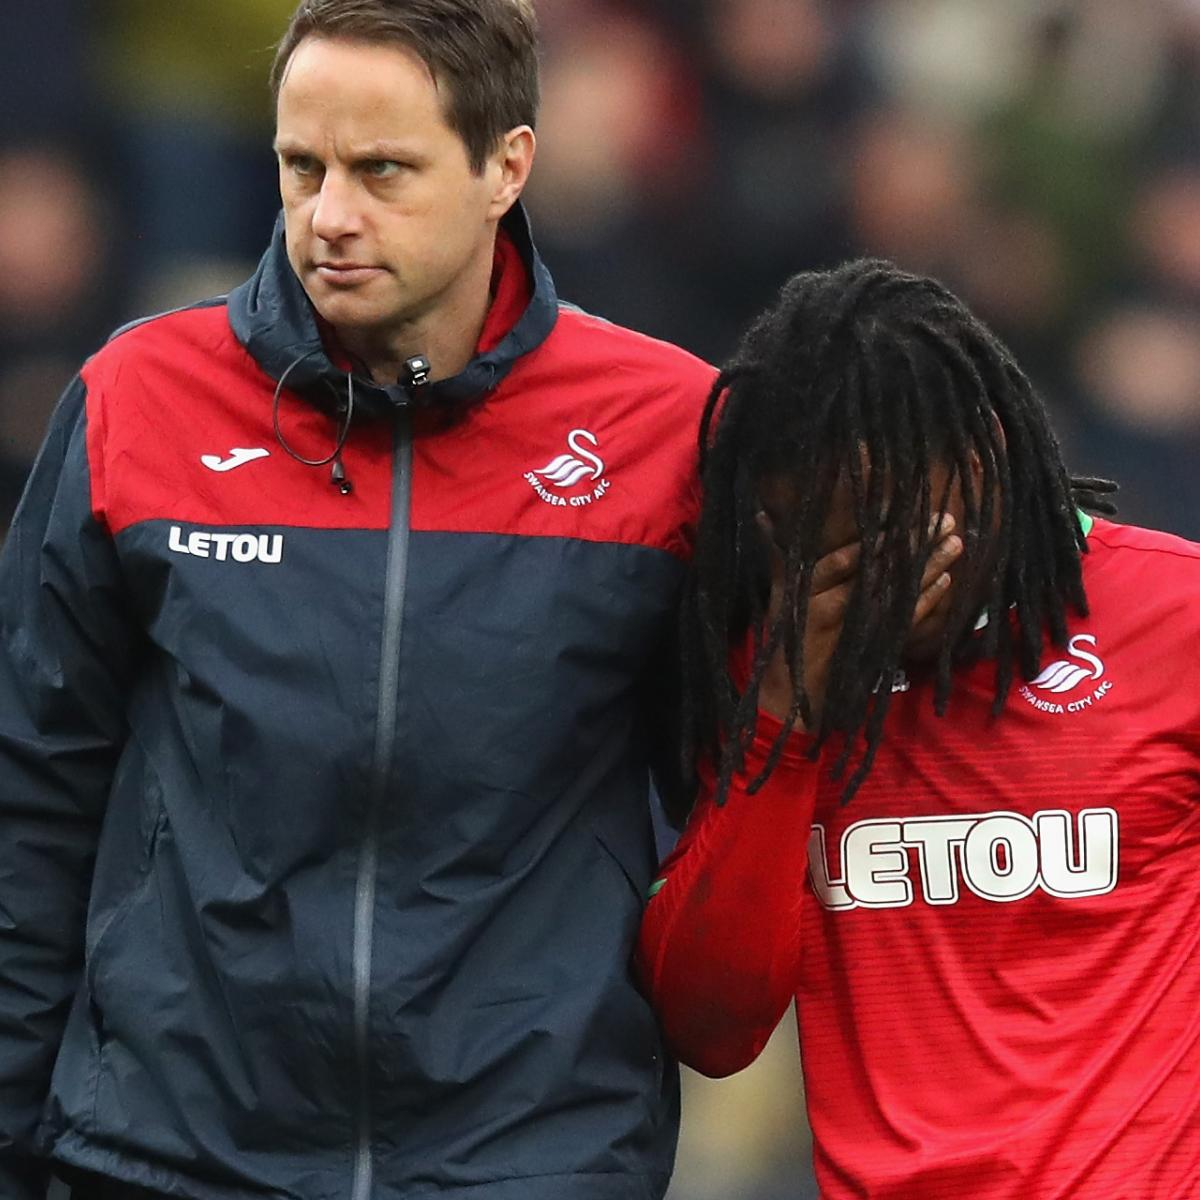 Renato Sanches: Behind the Biggest Fall From Grace in Recent Football History